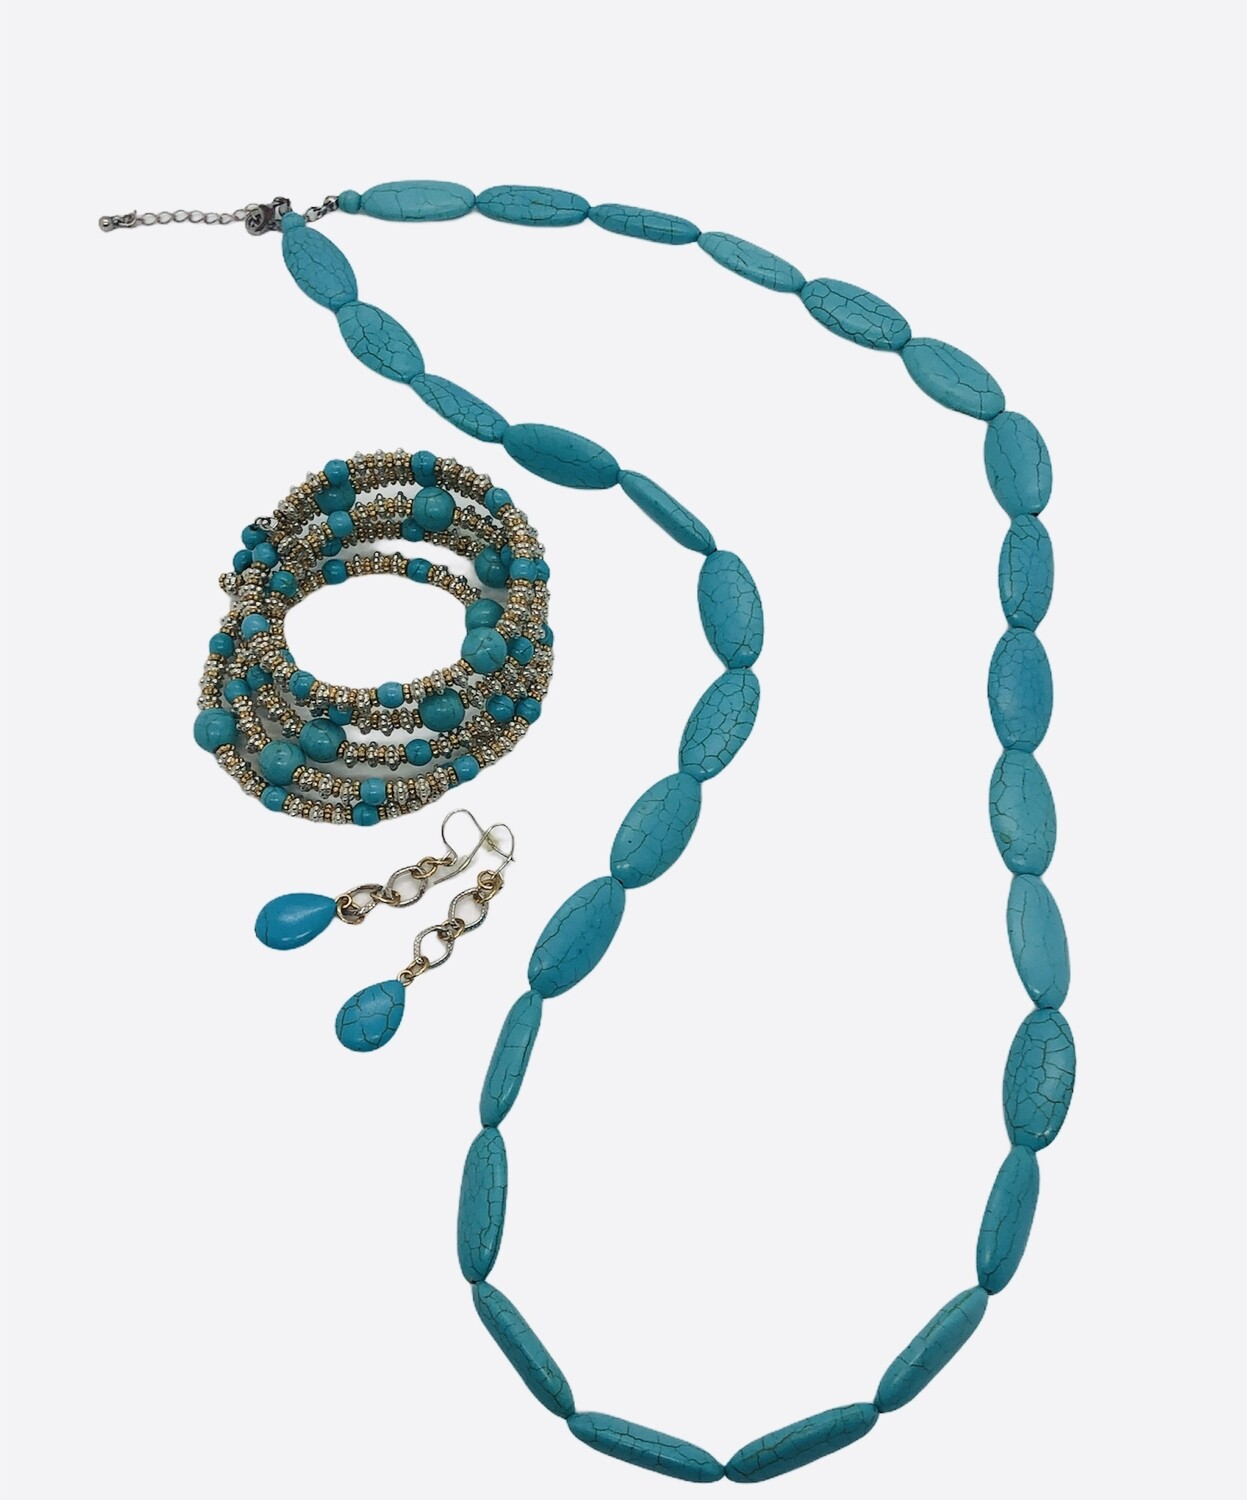 3pc Turquoise Necklace Jewelry Set